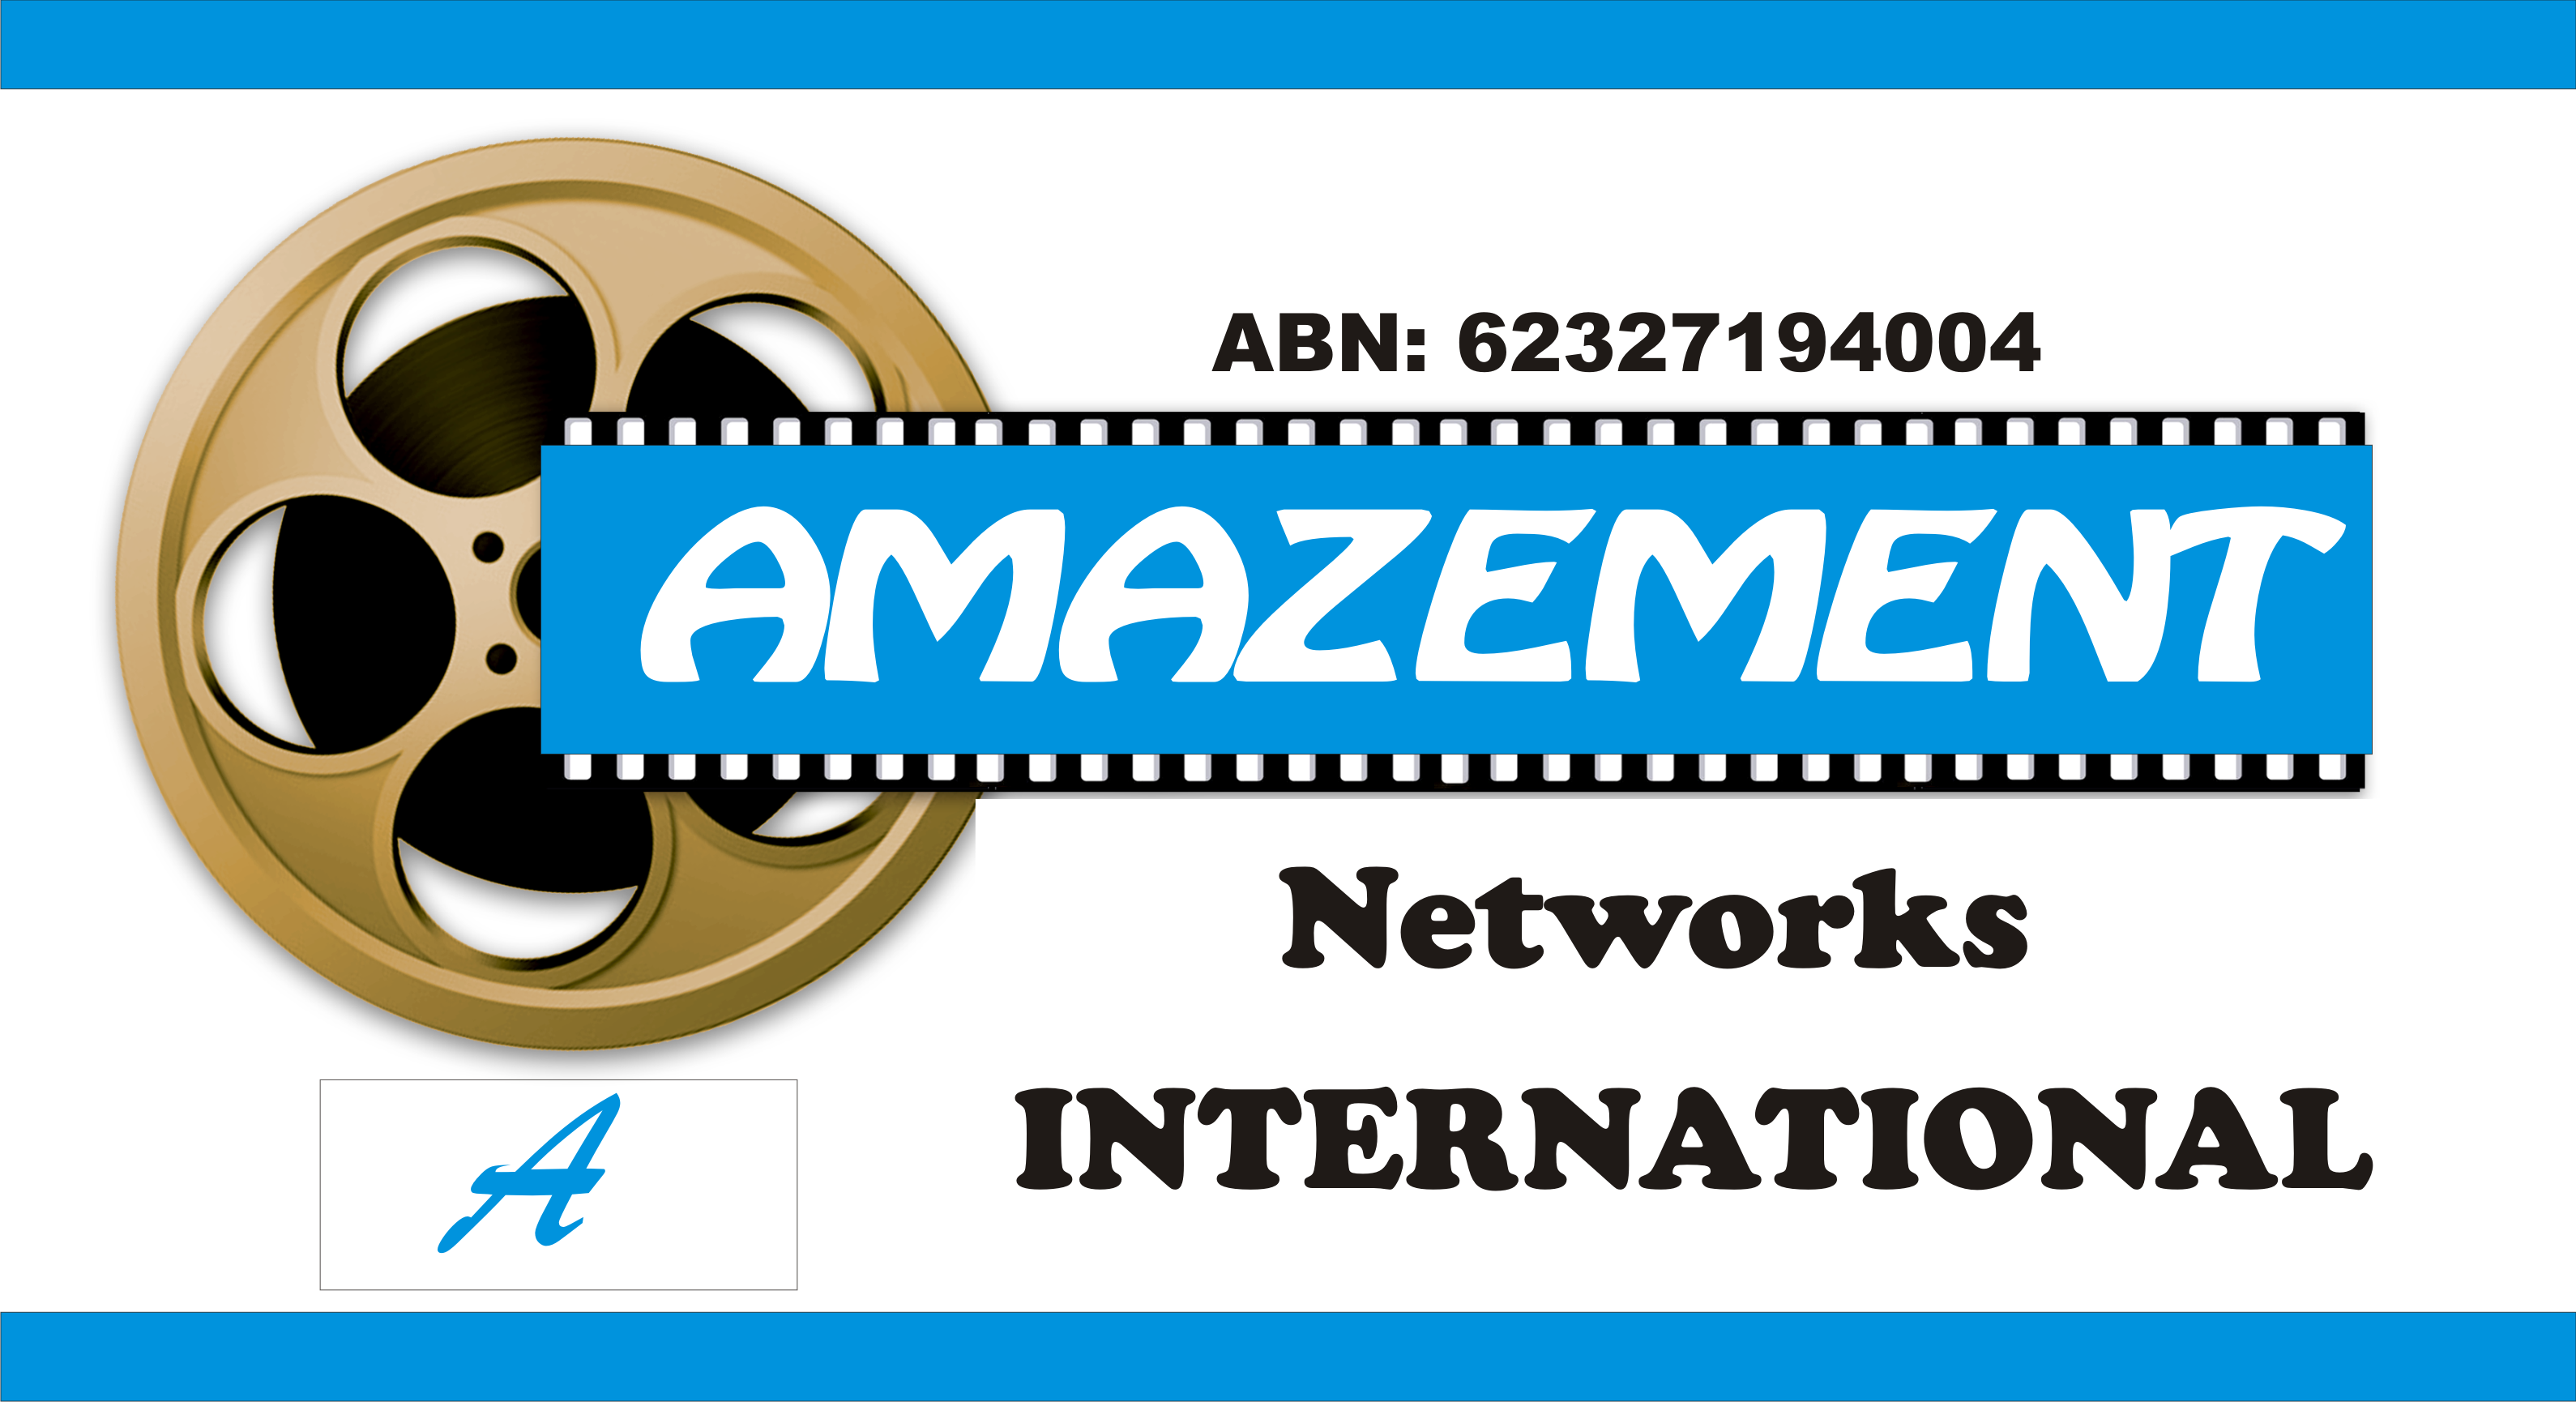 Amazement Networks International LOGO with ABN